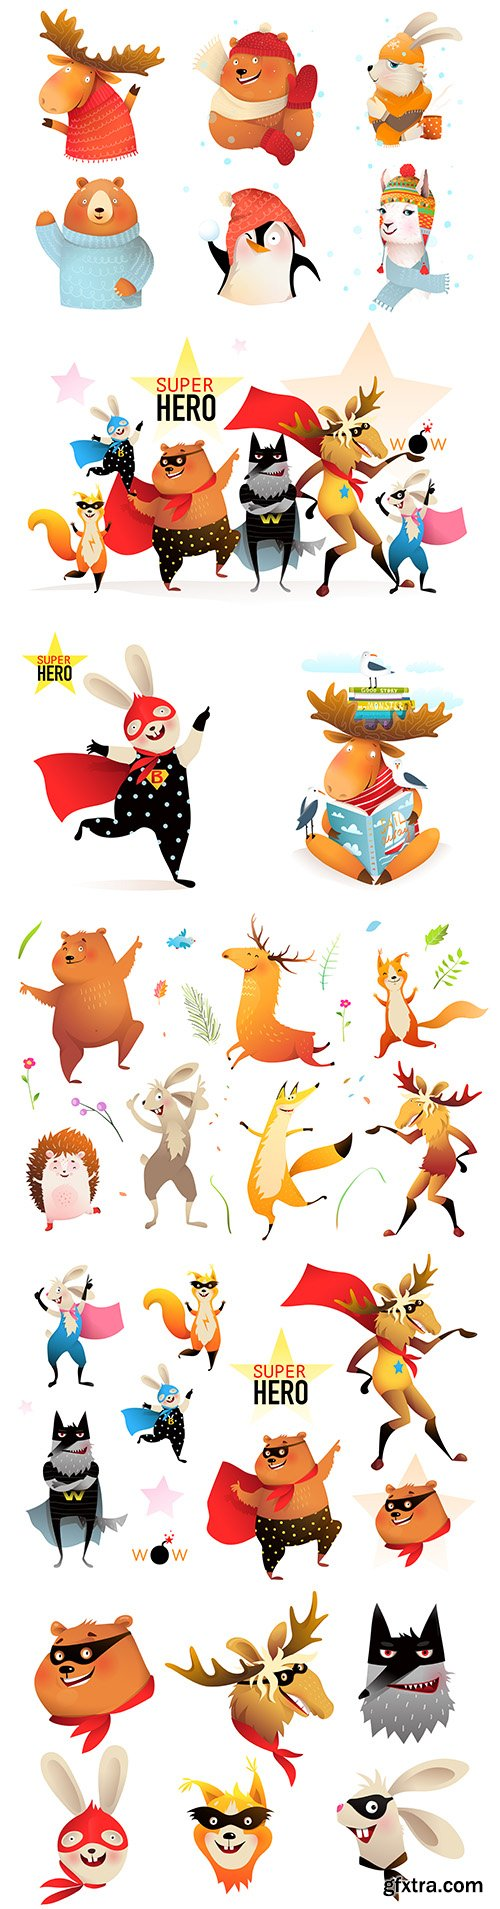 Wild animals and collection painted illustrations superheroes